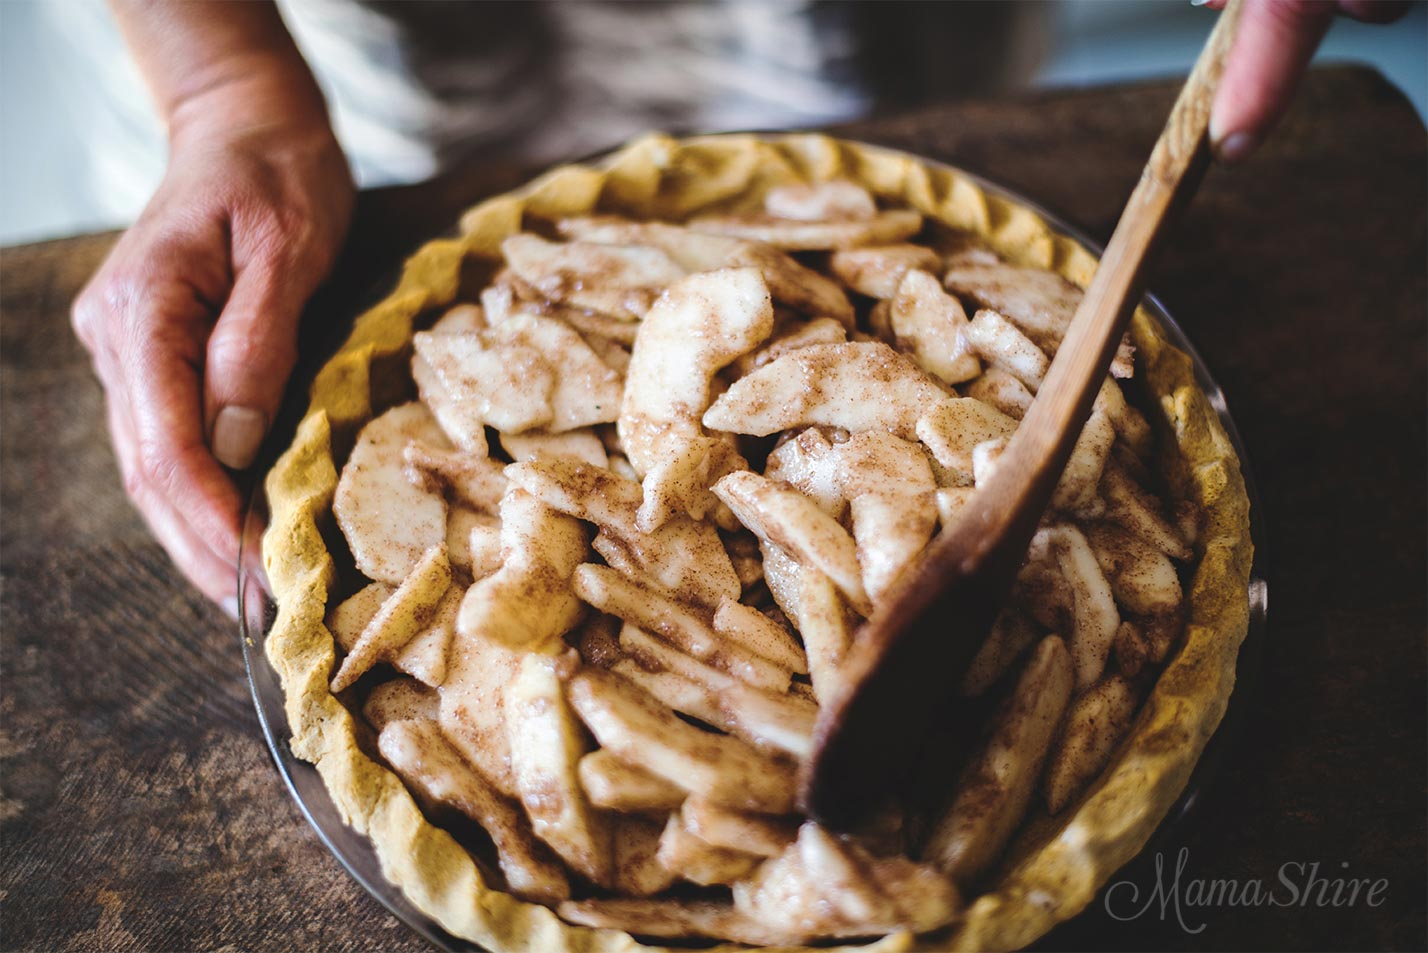 Apple Pie (Gluten Free, Dairy Free, Sugar-Free)